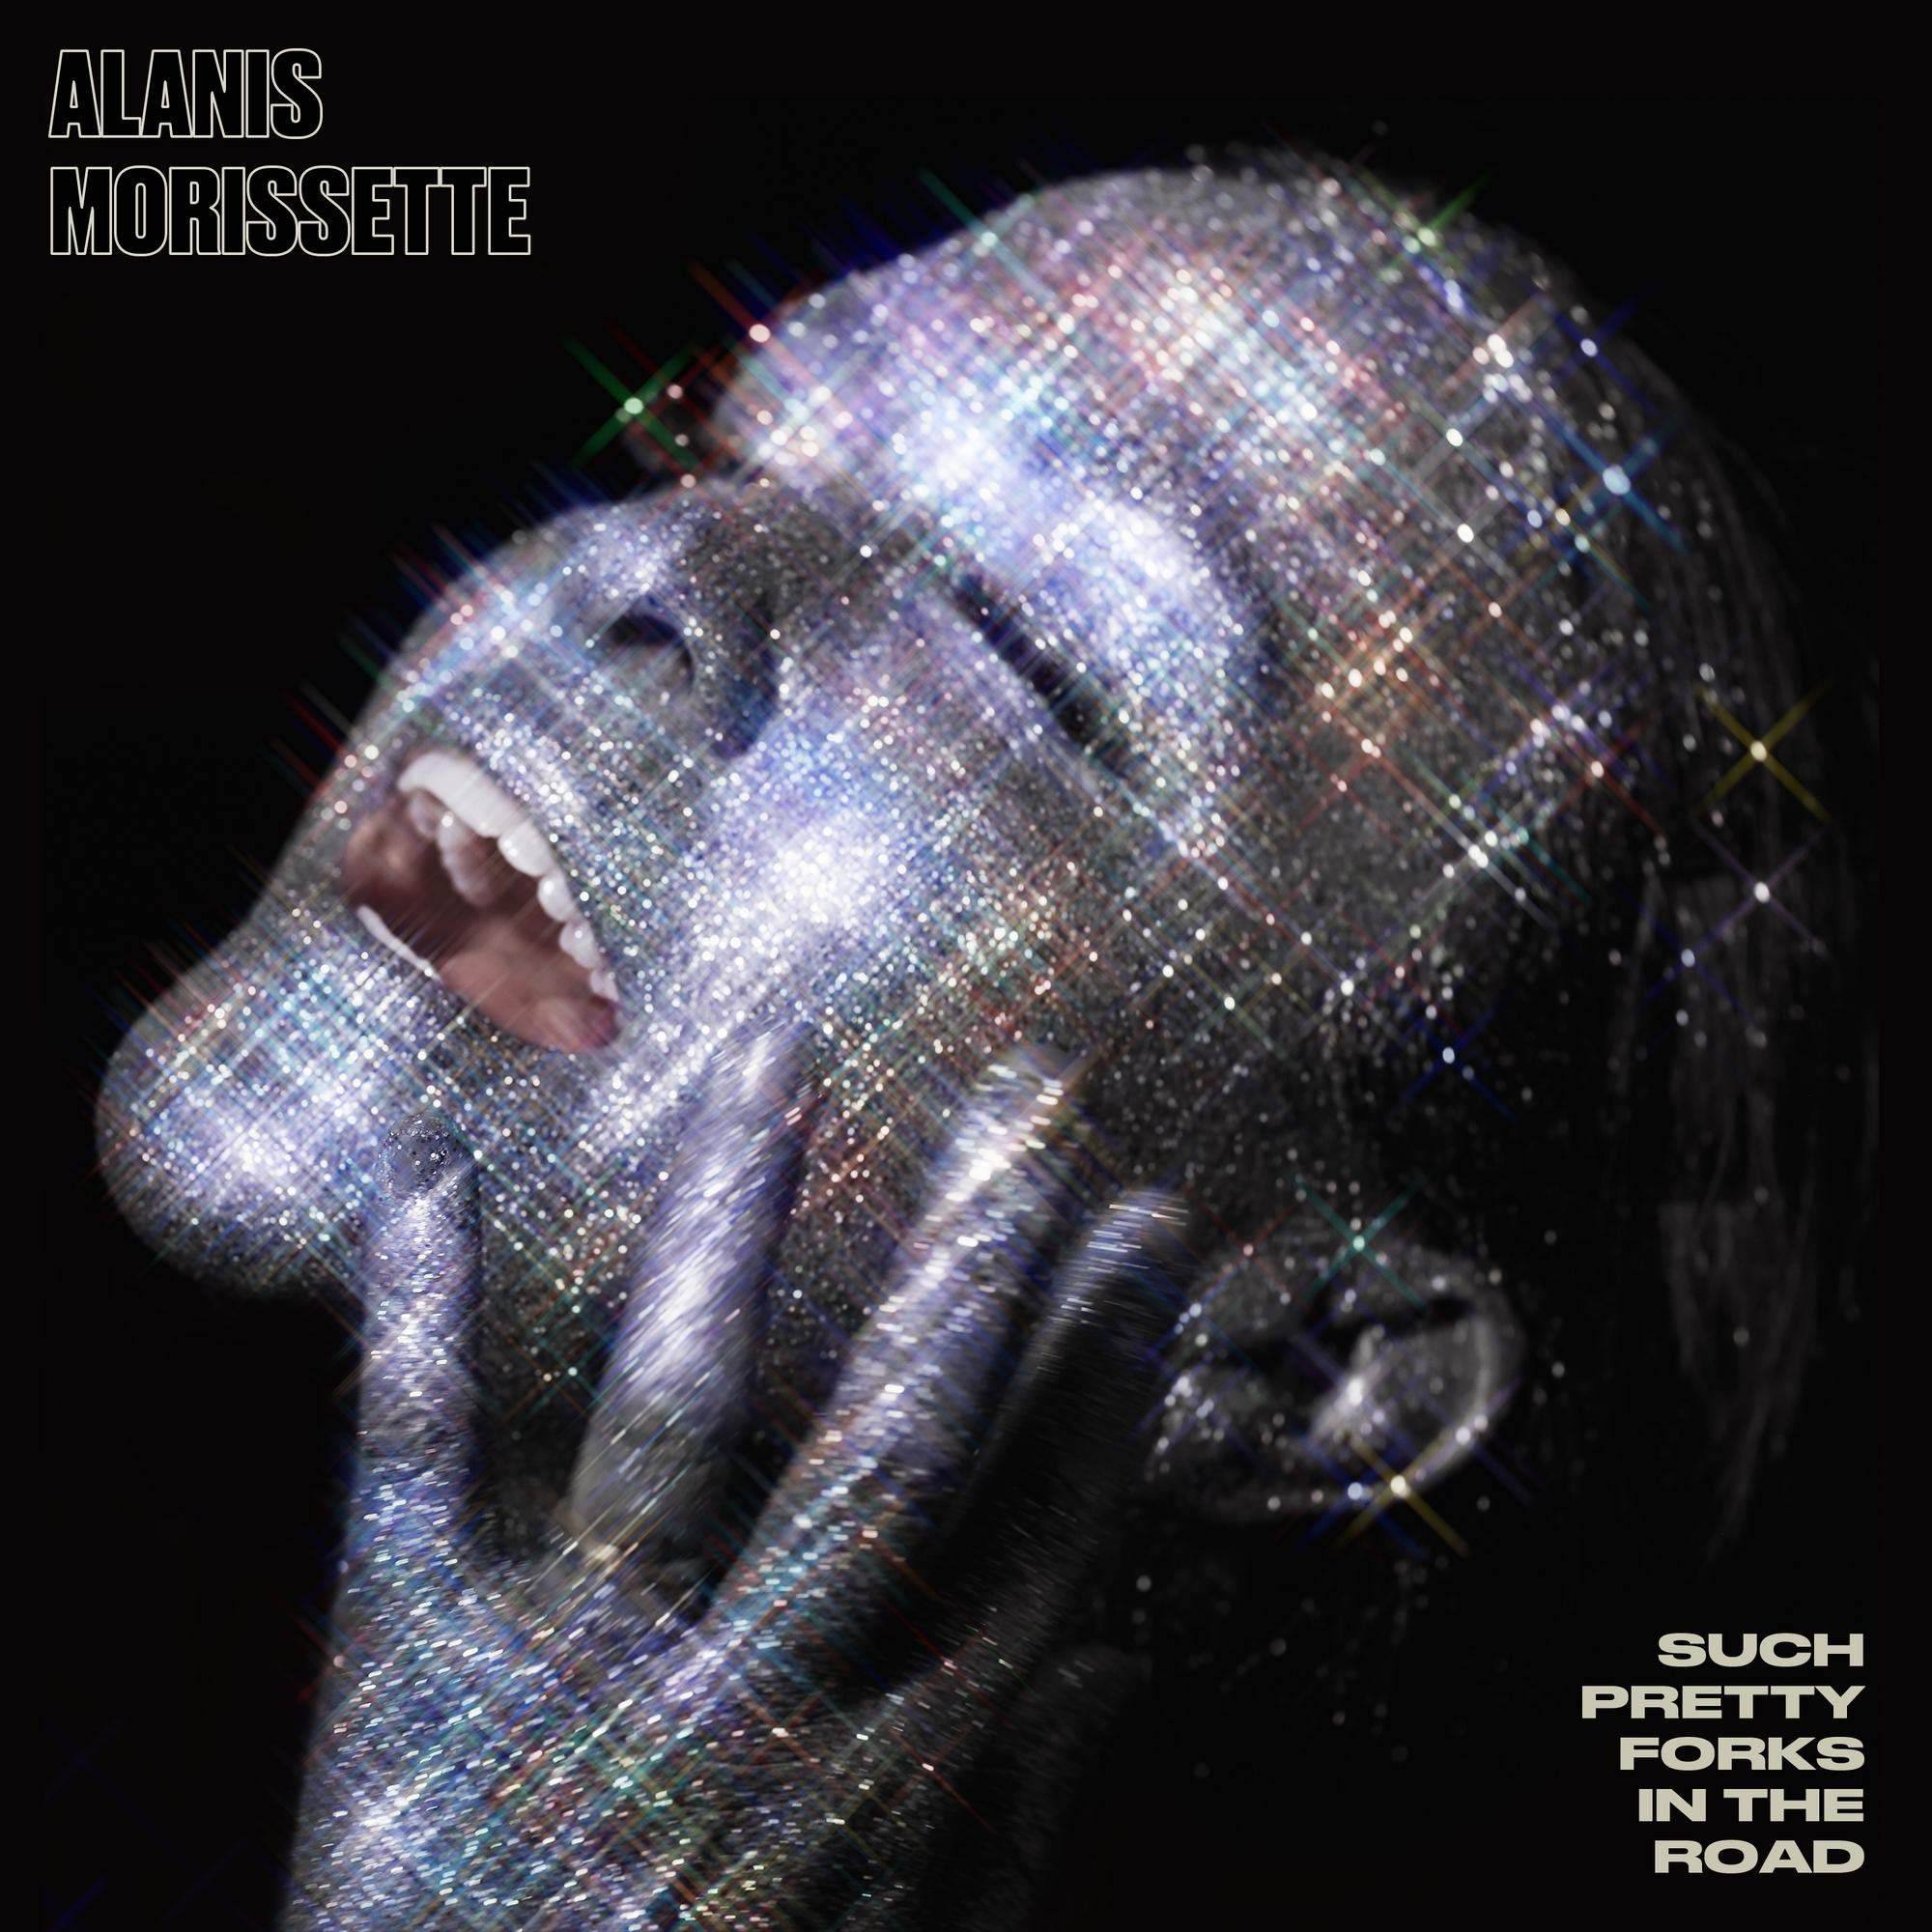 Alanis Morissette - Such Pretty Forks in the Road (2020) [FLAC] Download